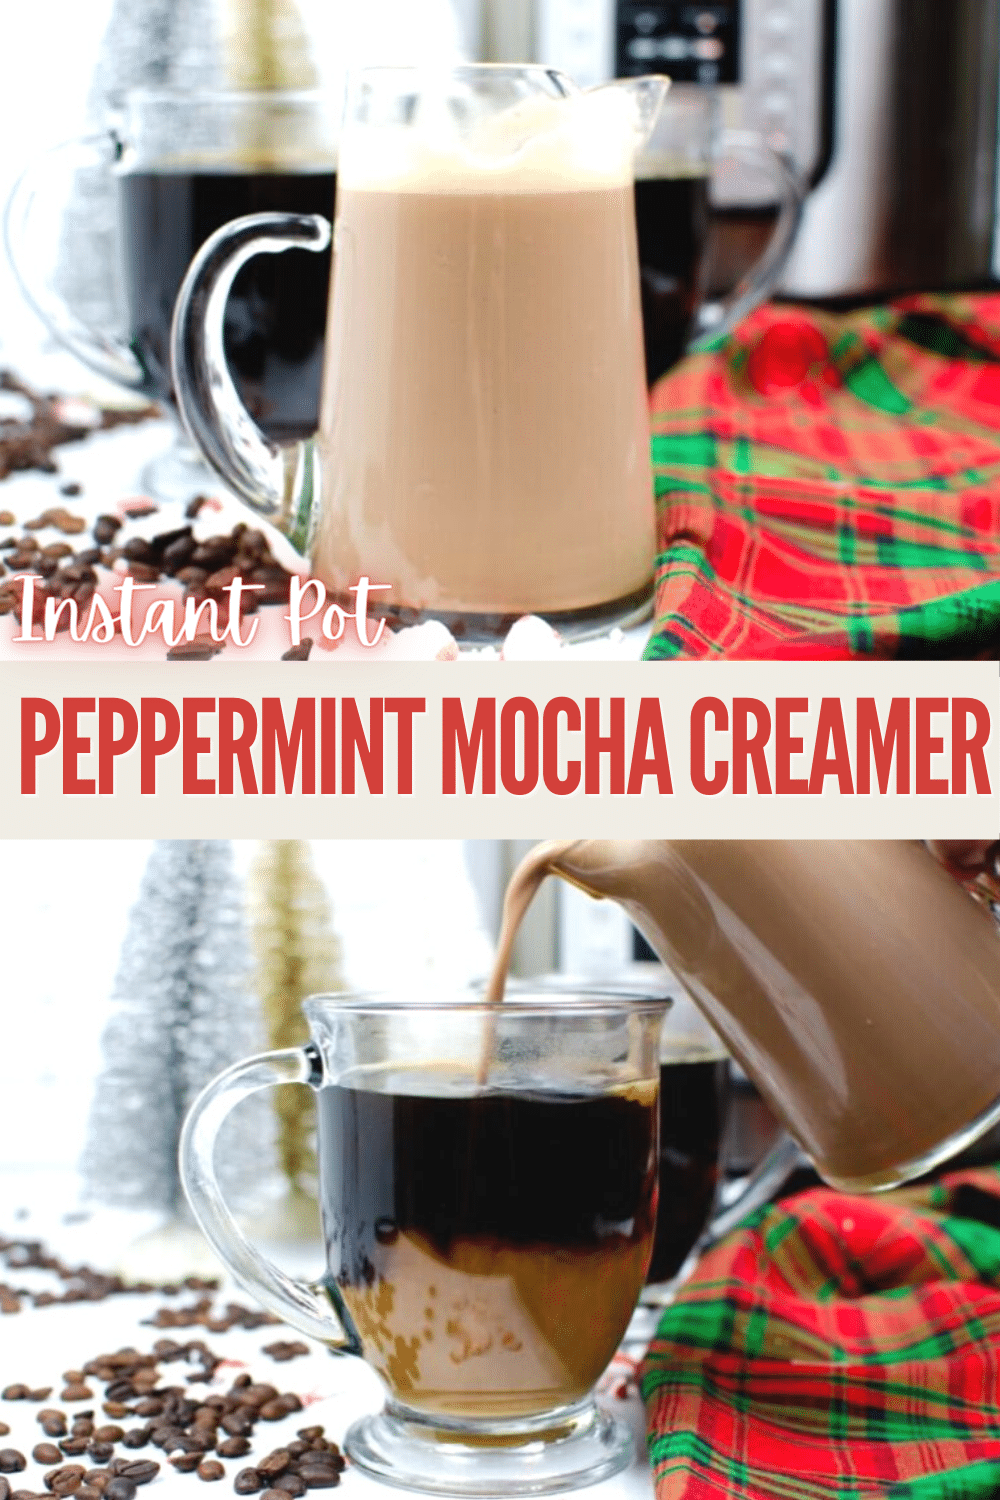 This recipe for Peppermint Mocha Creamer is so easy and takes no time at all if you have an Instant Pot! #coffeelovers #peppermintmocha #instantpot #DIYchristmasgift via @wondermomwannab